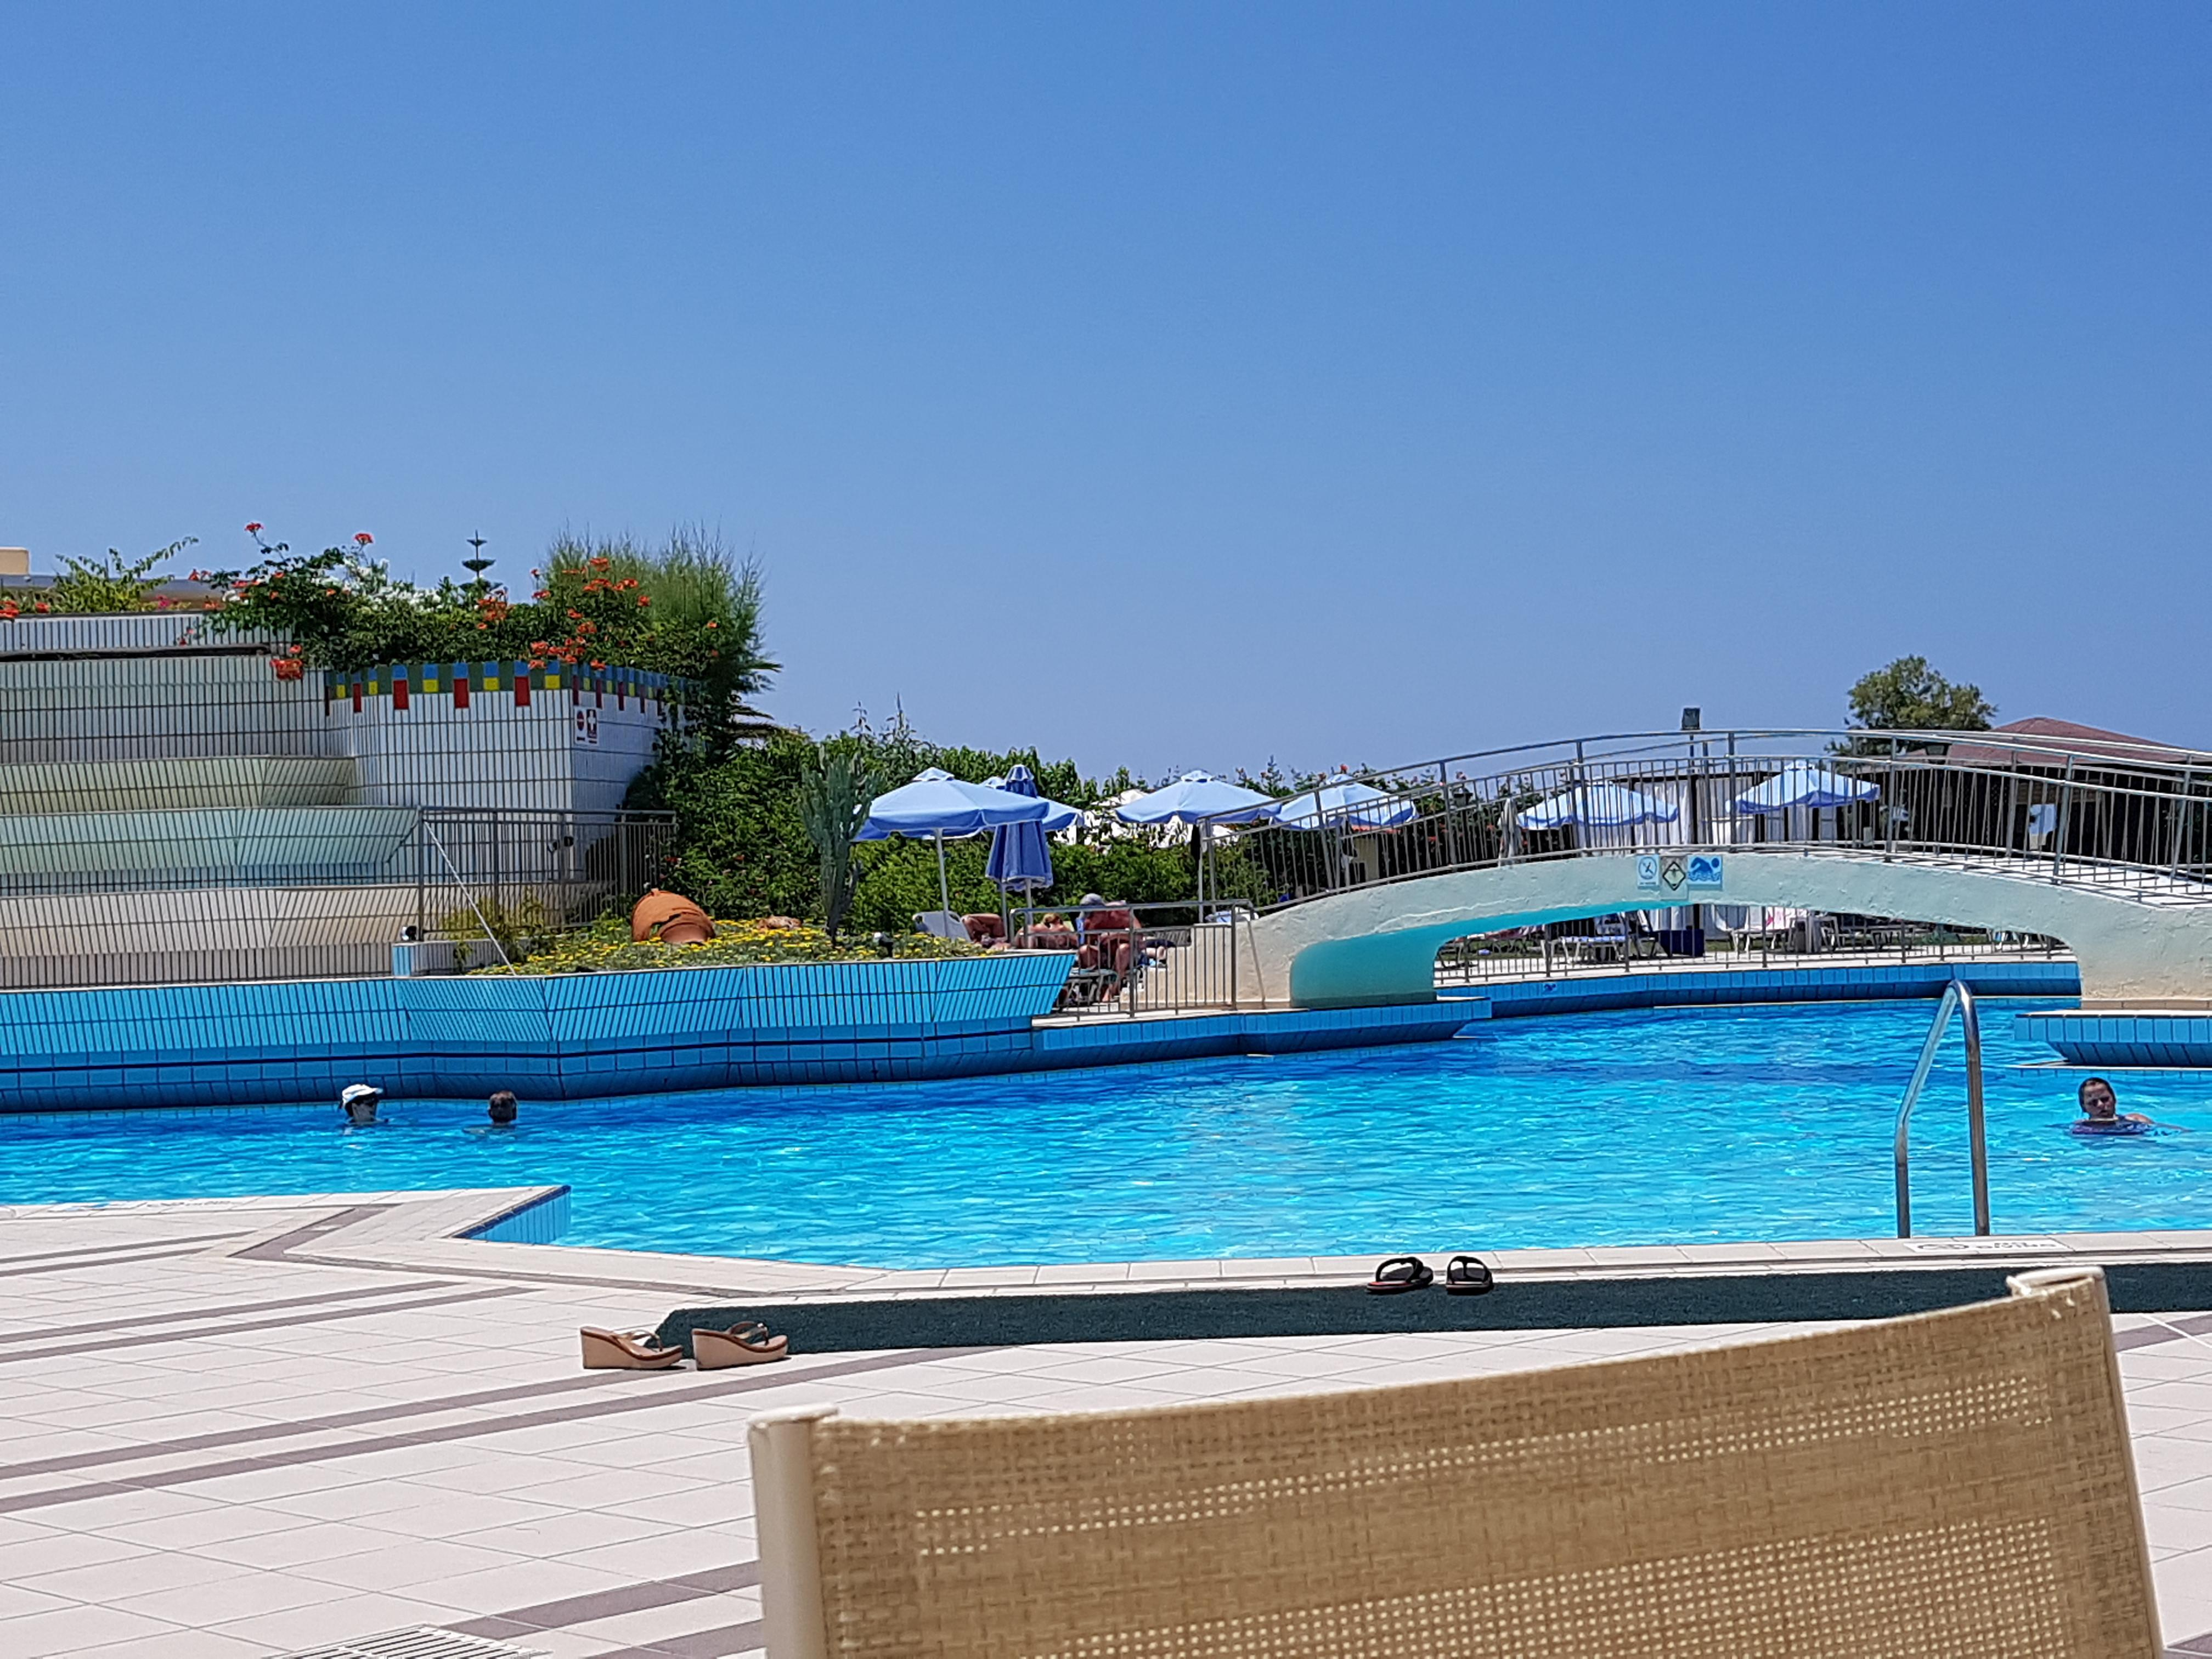 Cash Pool Nürnberg Creta Star Hotel All Inclusive 2019 Pictures Reviews Prices